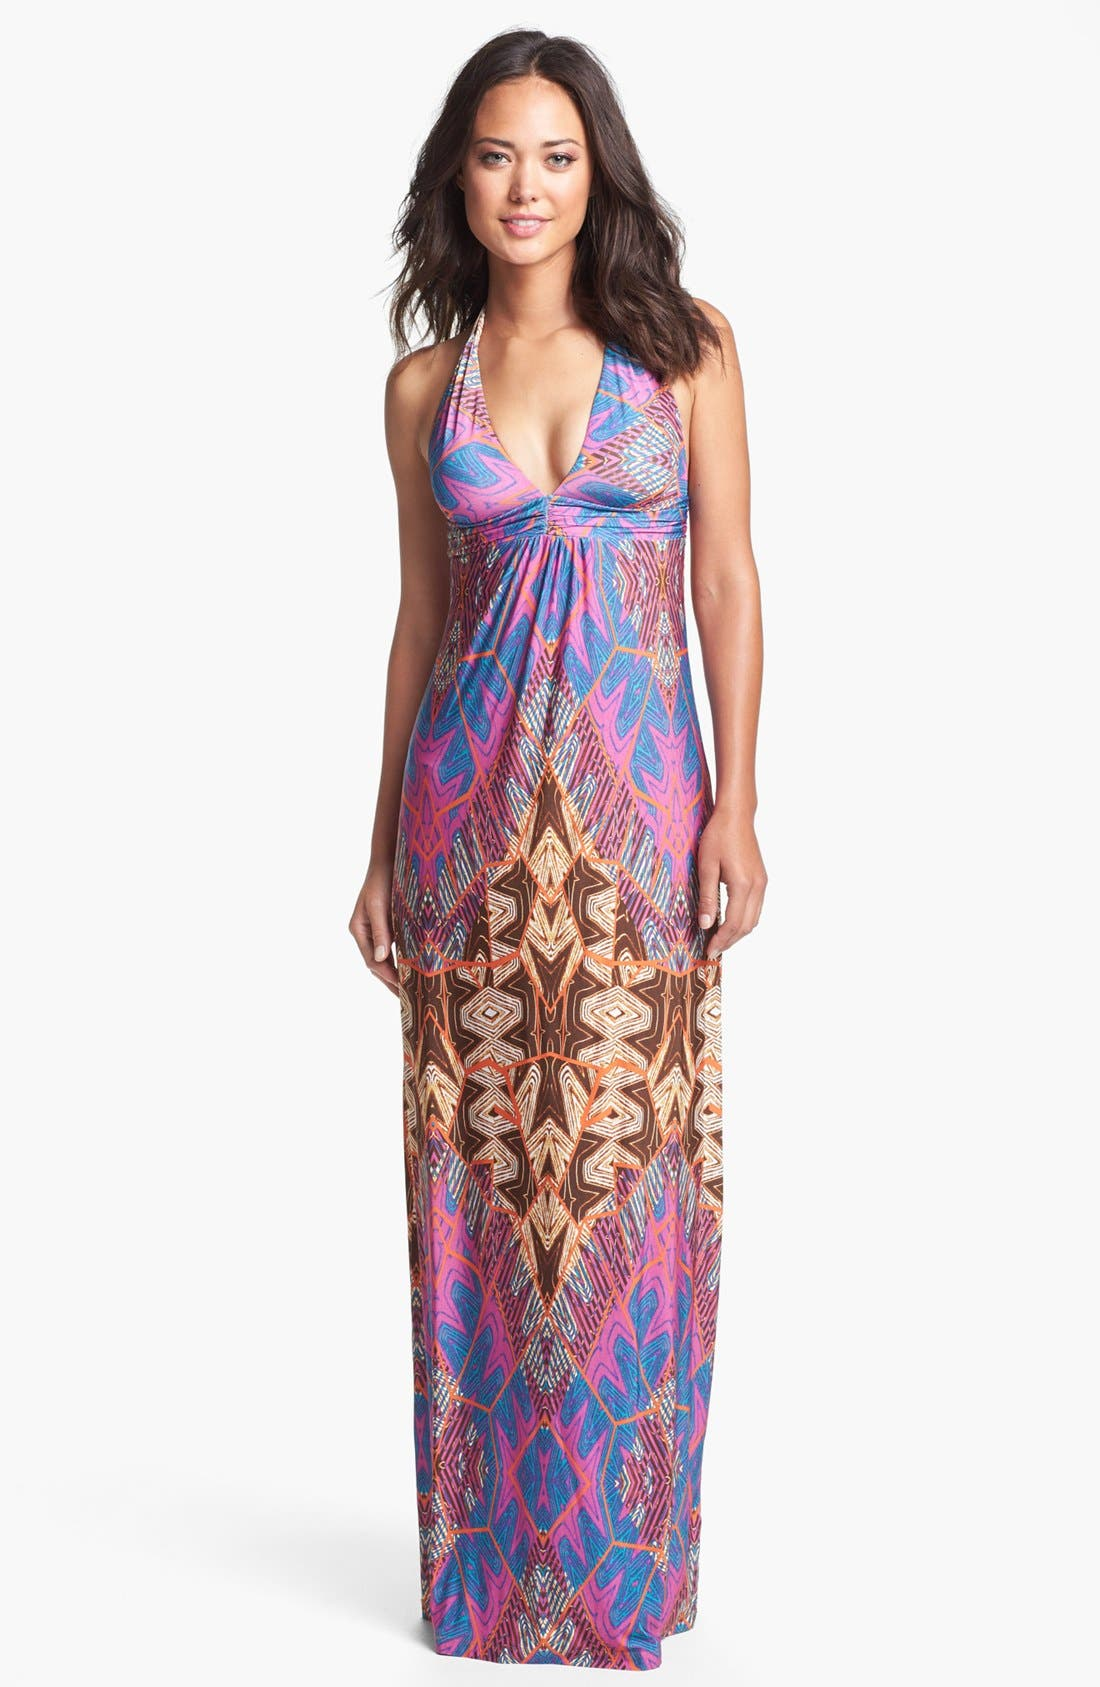 Alternate Image 1 Selected - ViX Swimwear 'St. Martin' Cover-Up Maxi Dress